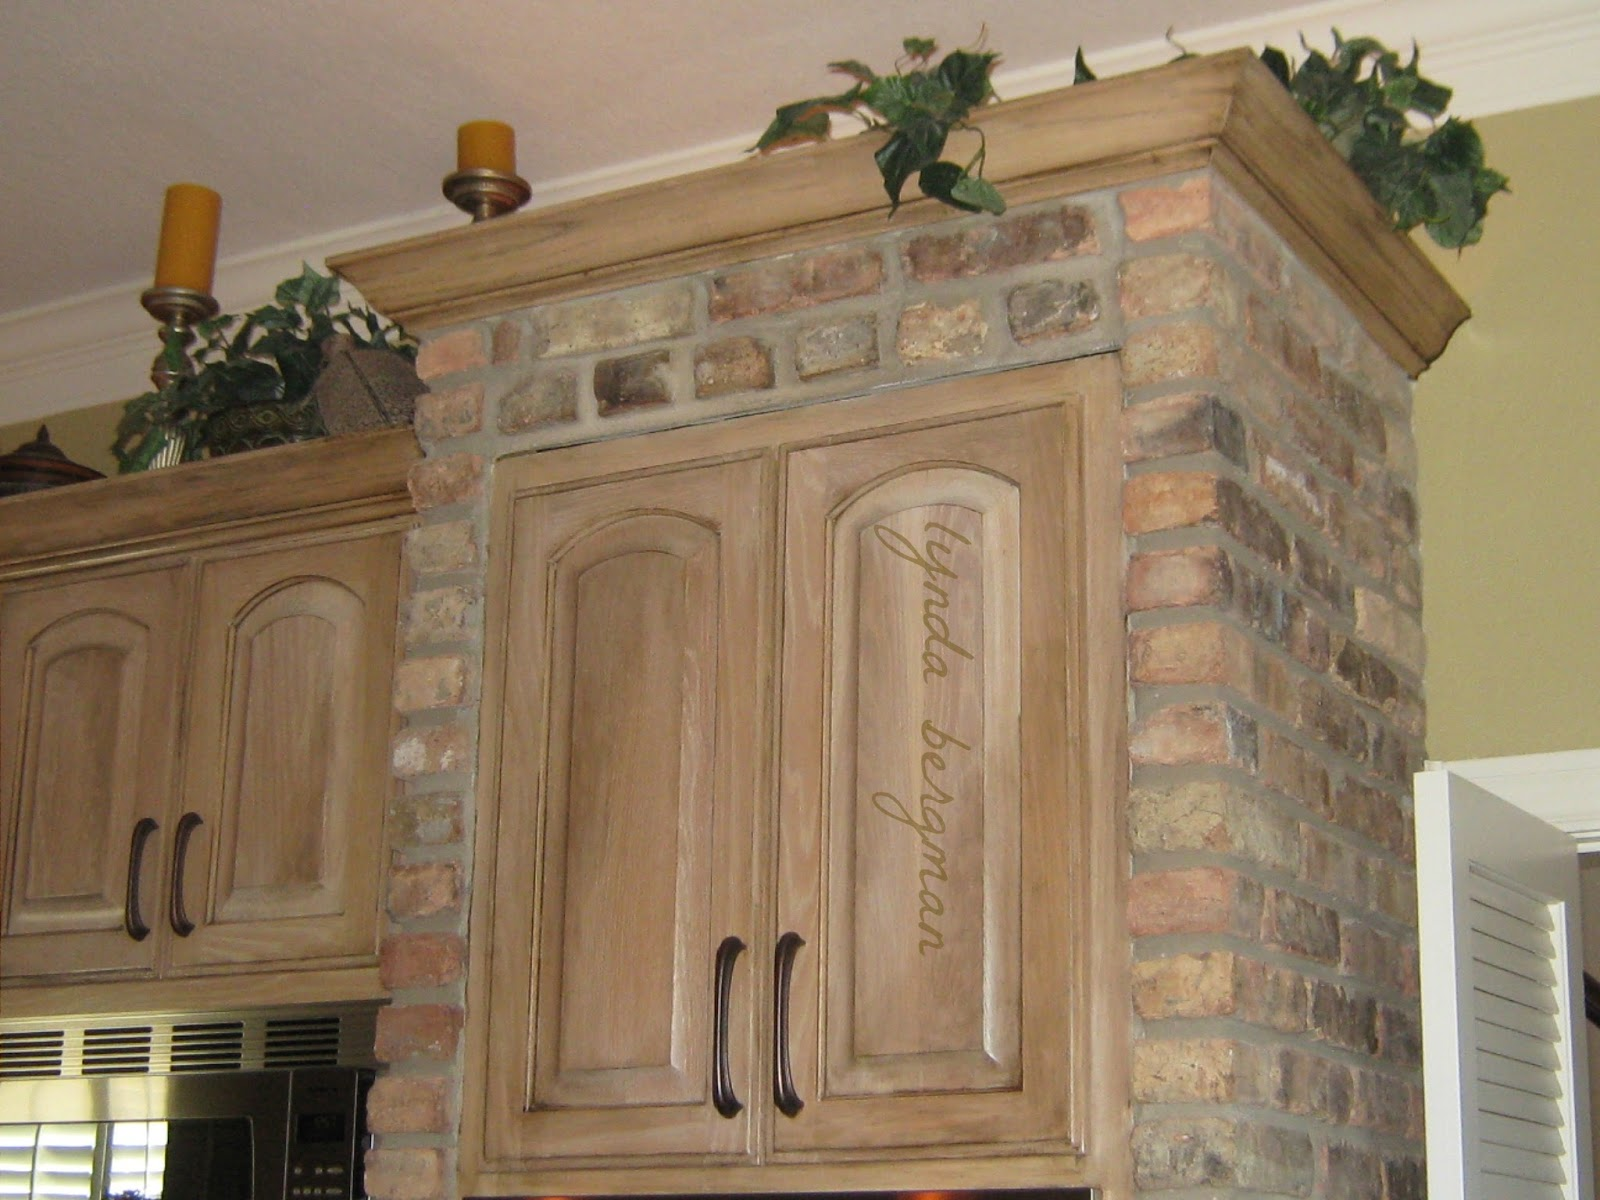 Lynda bergman decorative artisan distressing aging pickled white washed kitchen cabinets for - Whitewashed oak cabinets ...